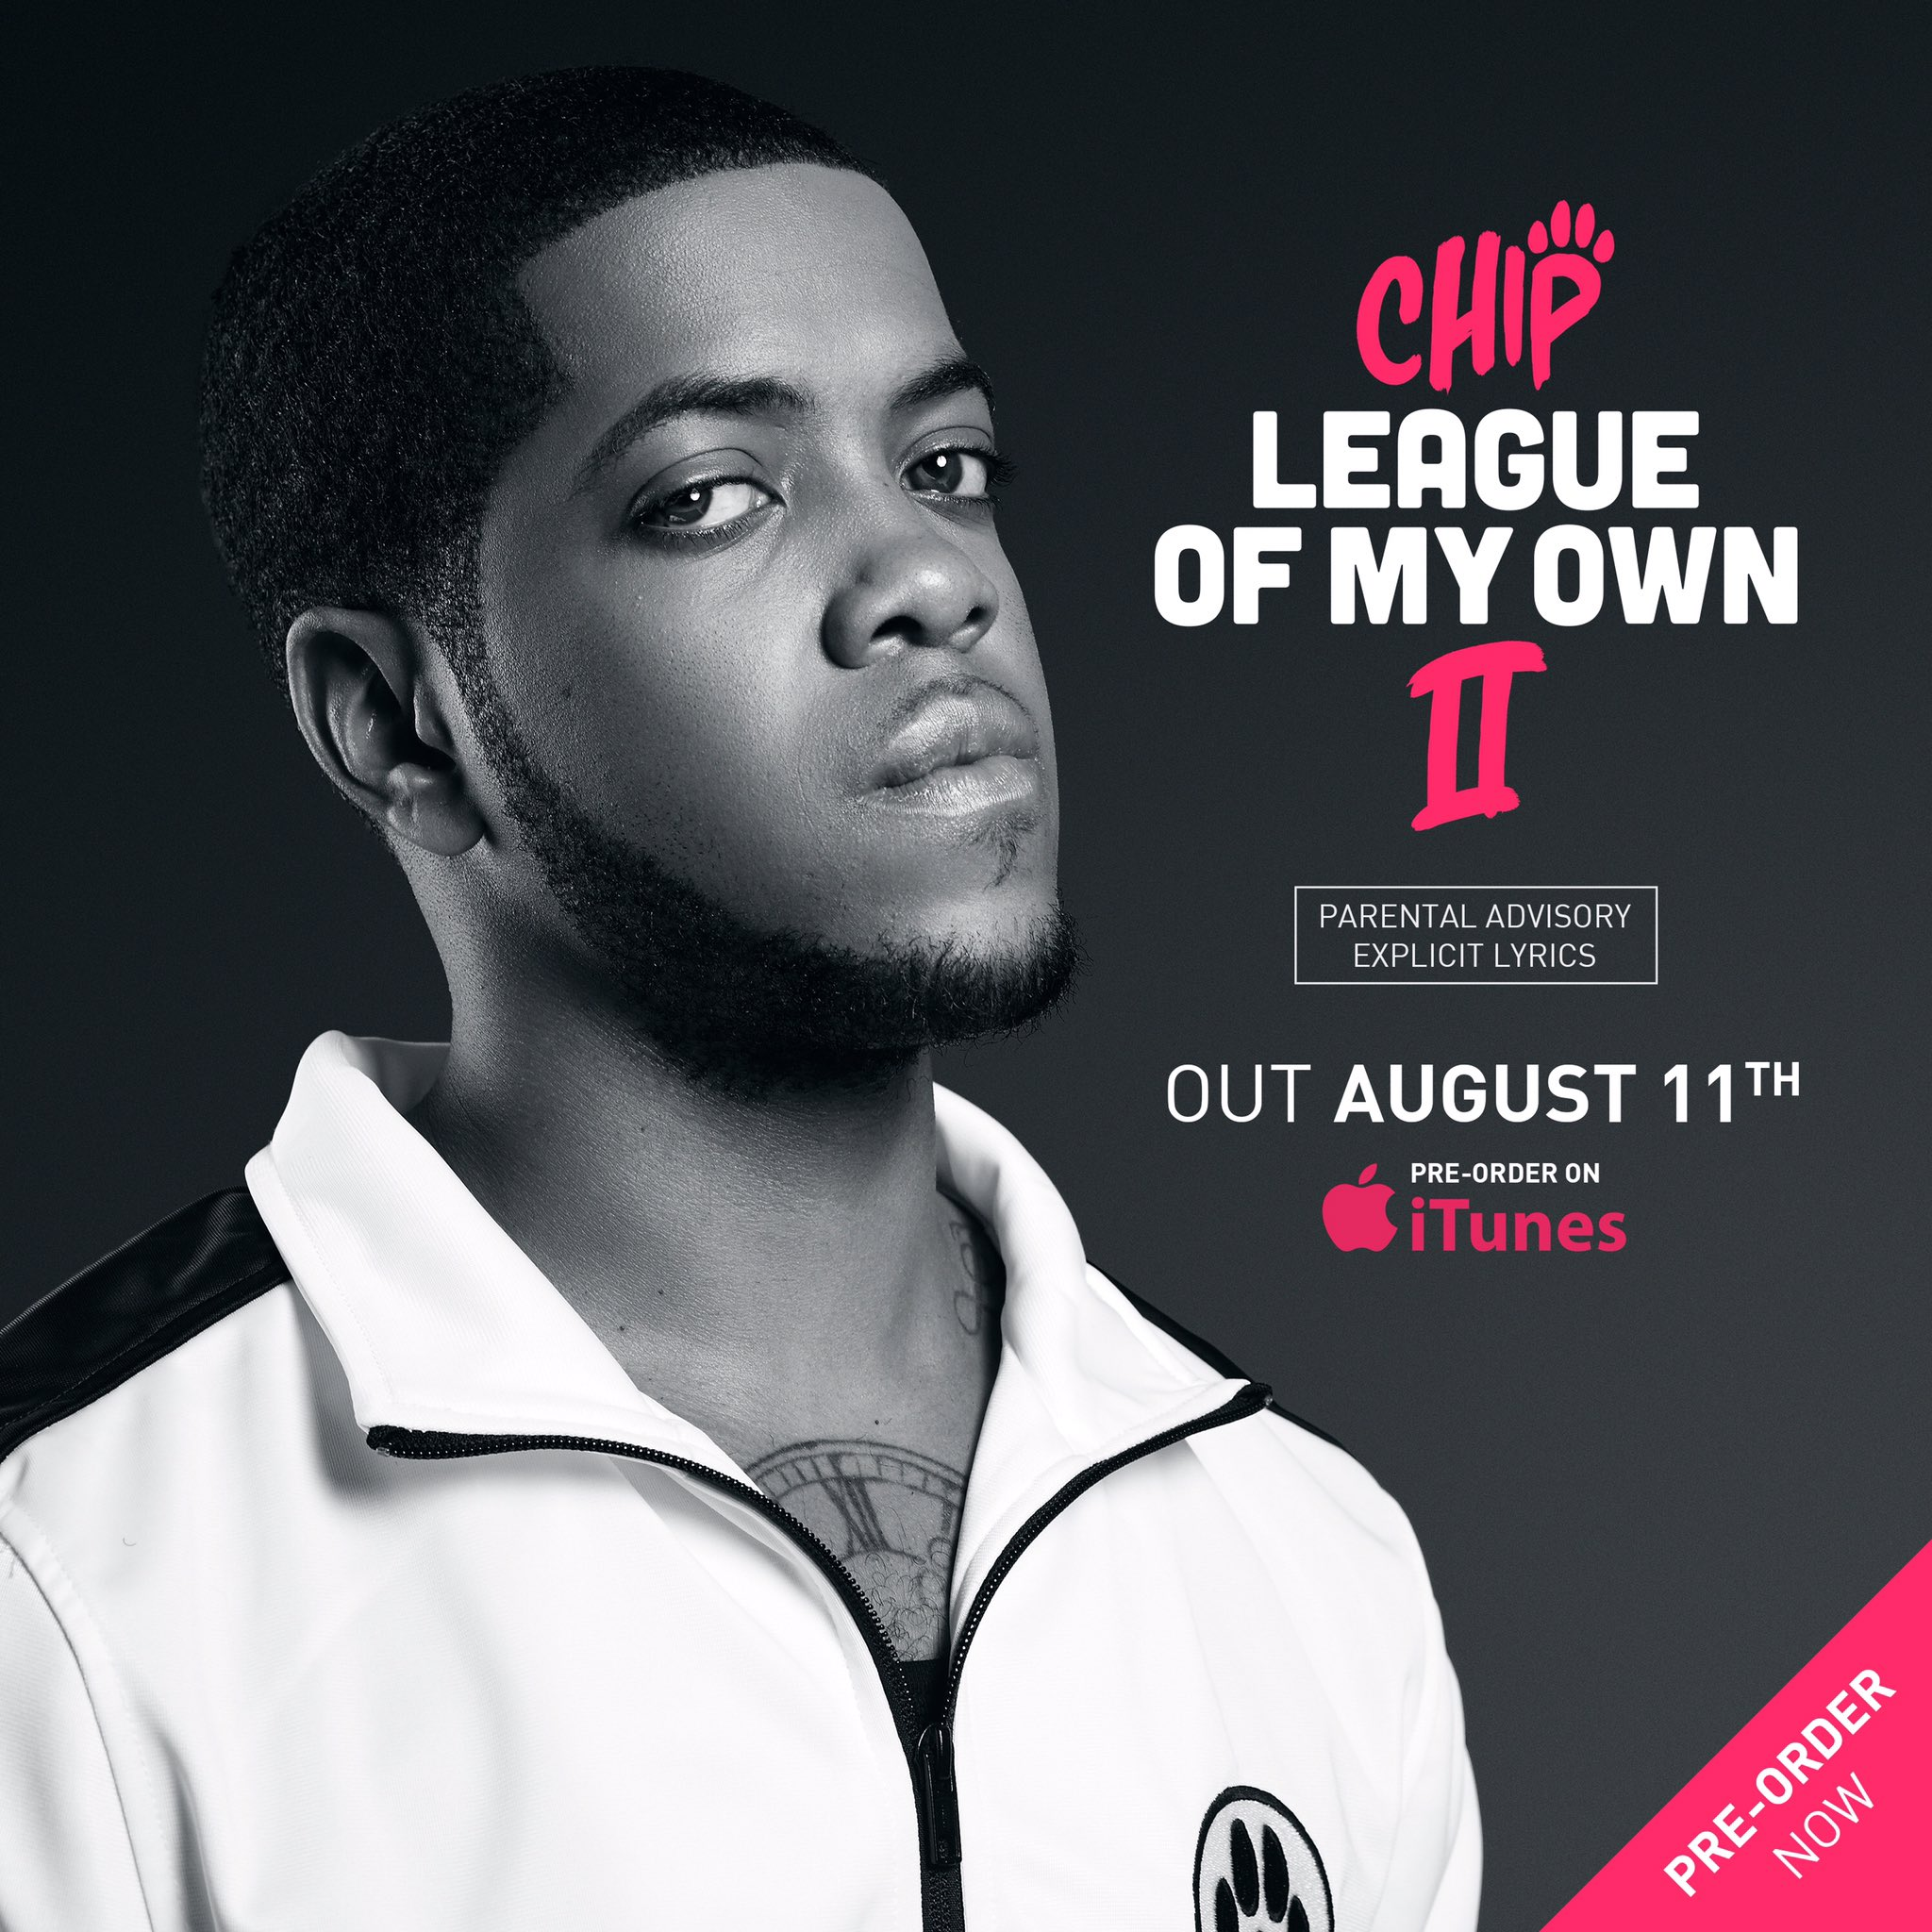 PRE-ORDER LEAGUE OF MY OWN II NOW!!! OUT 11TH AUGUST - https://t.co/DVuwZrL1yZ #CM 🆙🆙🐾 https://t.co/nSyh6peAJM